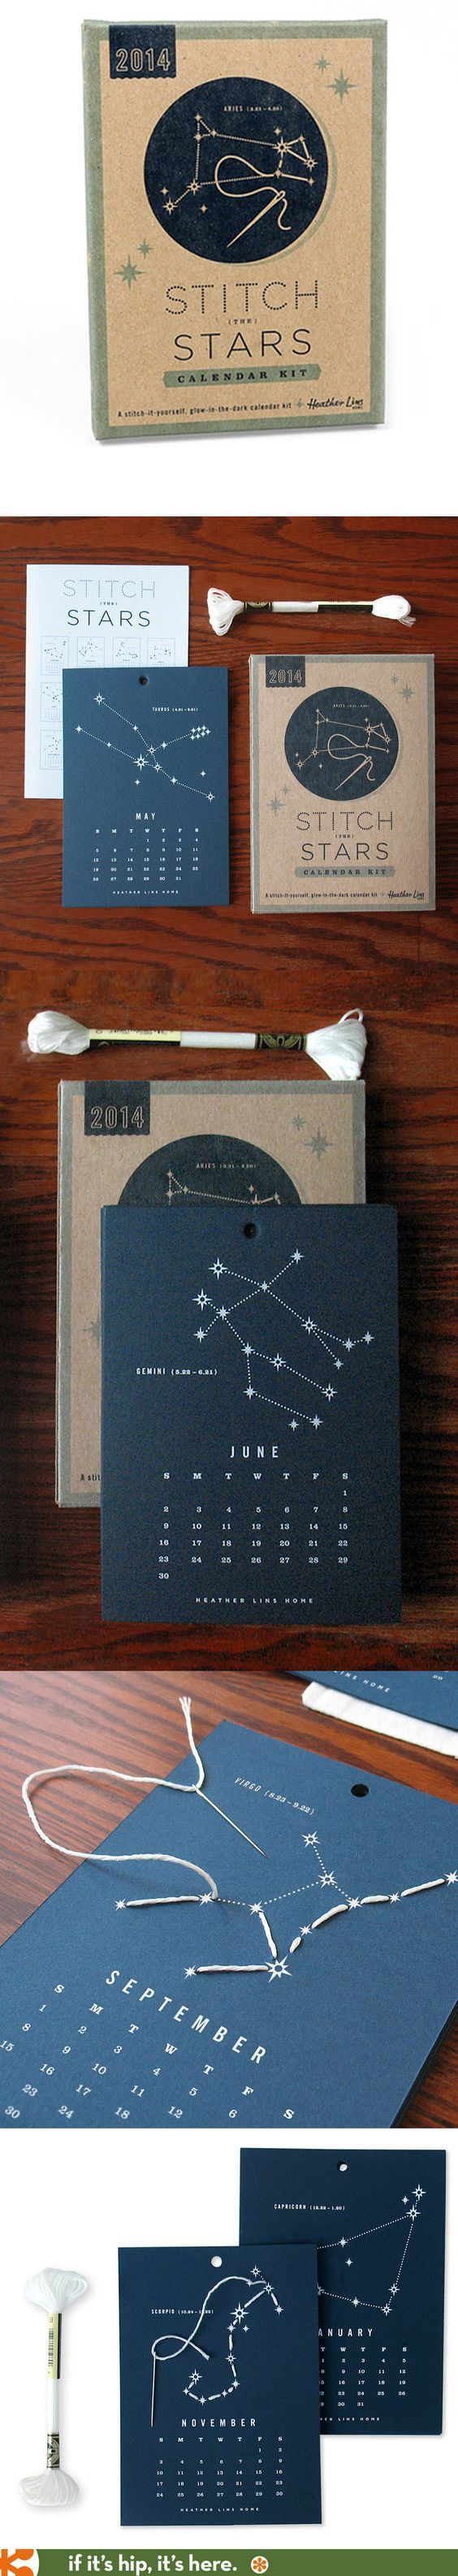 The 2014 Stitch The Stars Calendar KIt is beautifully designed and packaged. | Inspiration || Original | Pinterest